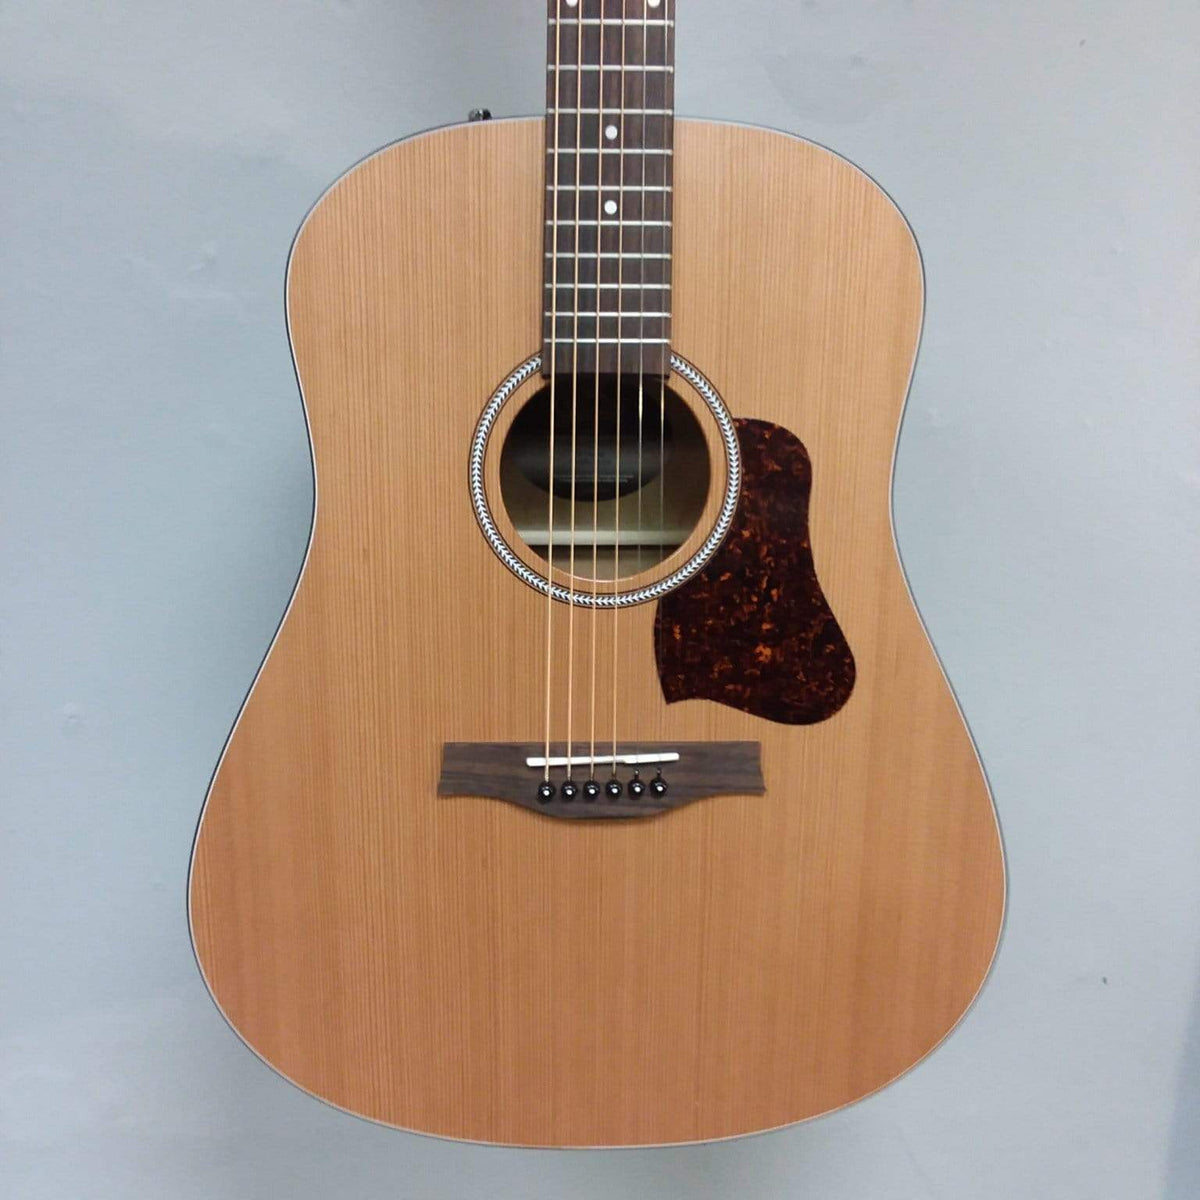 Seagull GUITARS - ACOUSTIC GUITARS Seagull S6 Original Blem